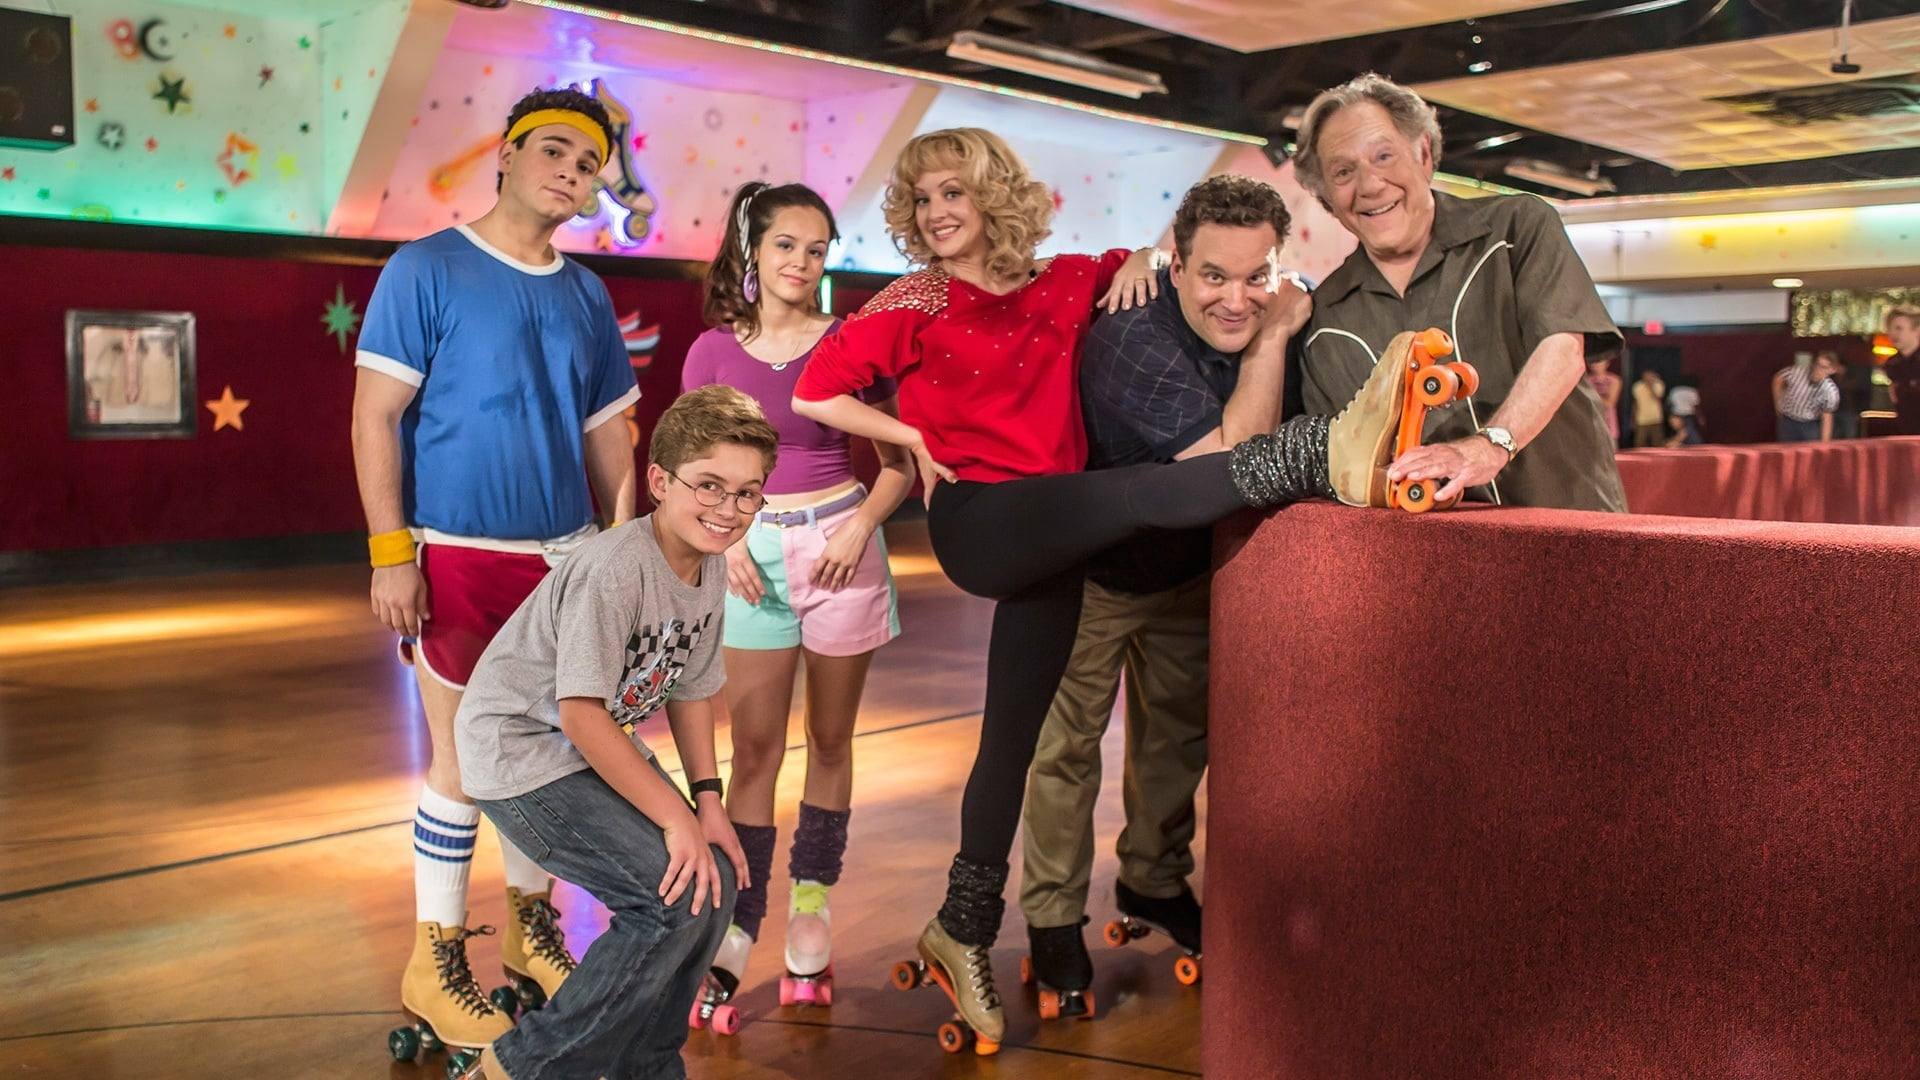 The Goldbergs - Season 8